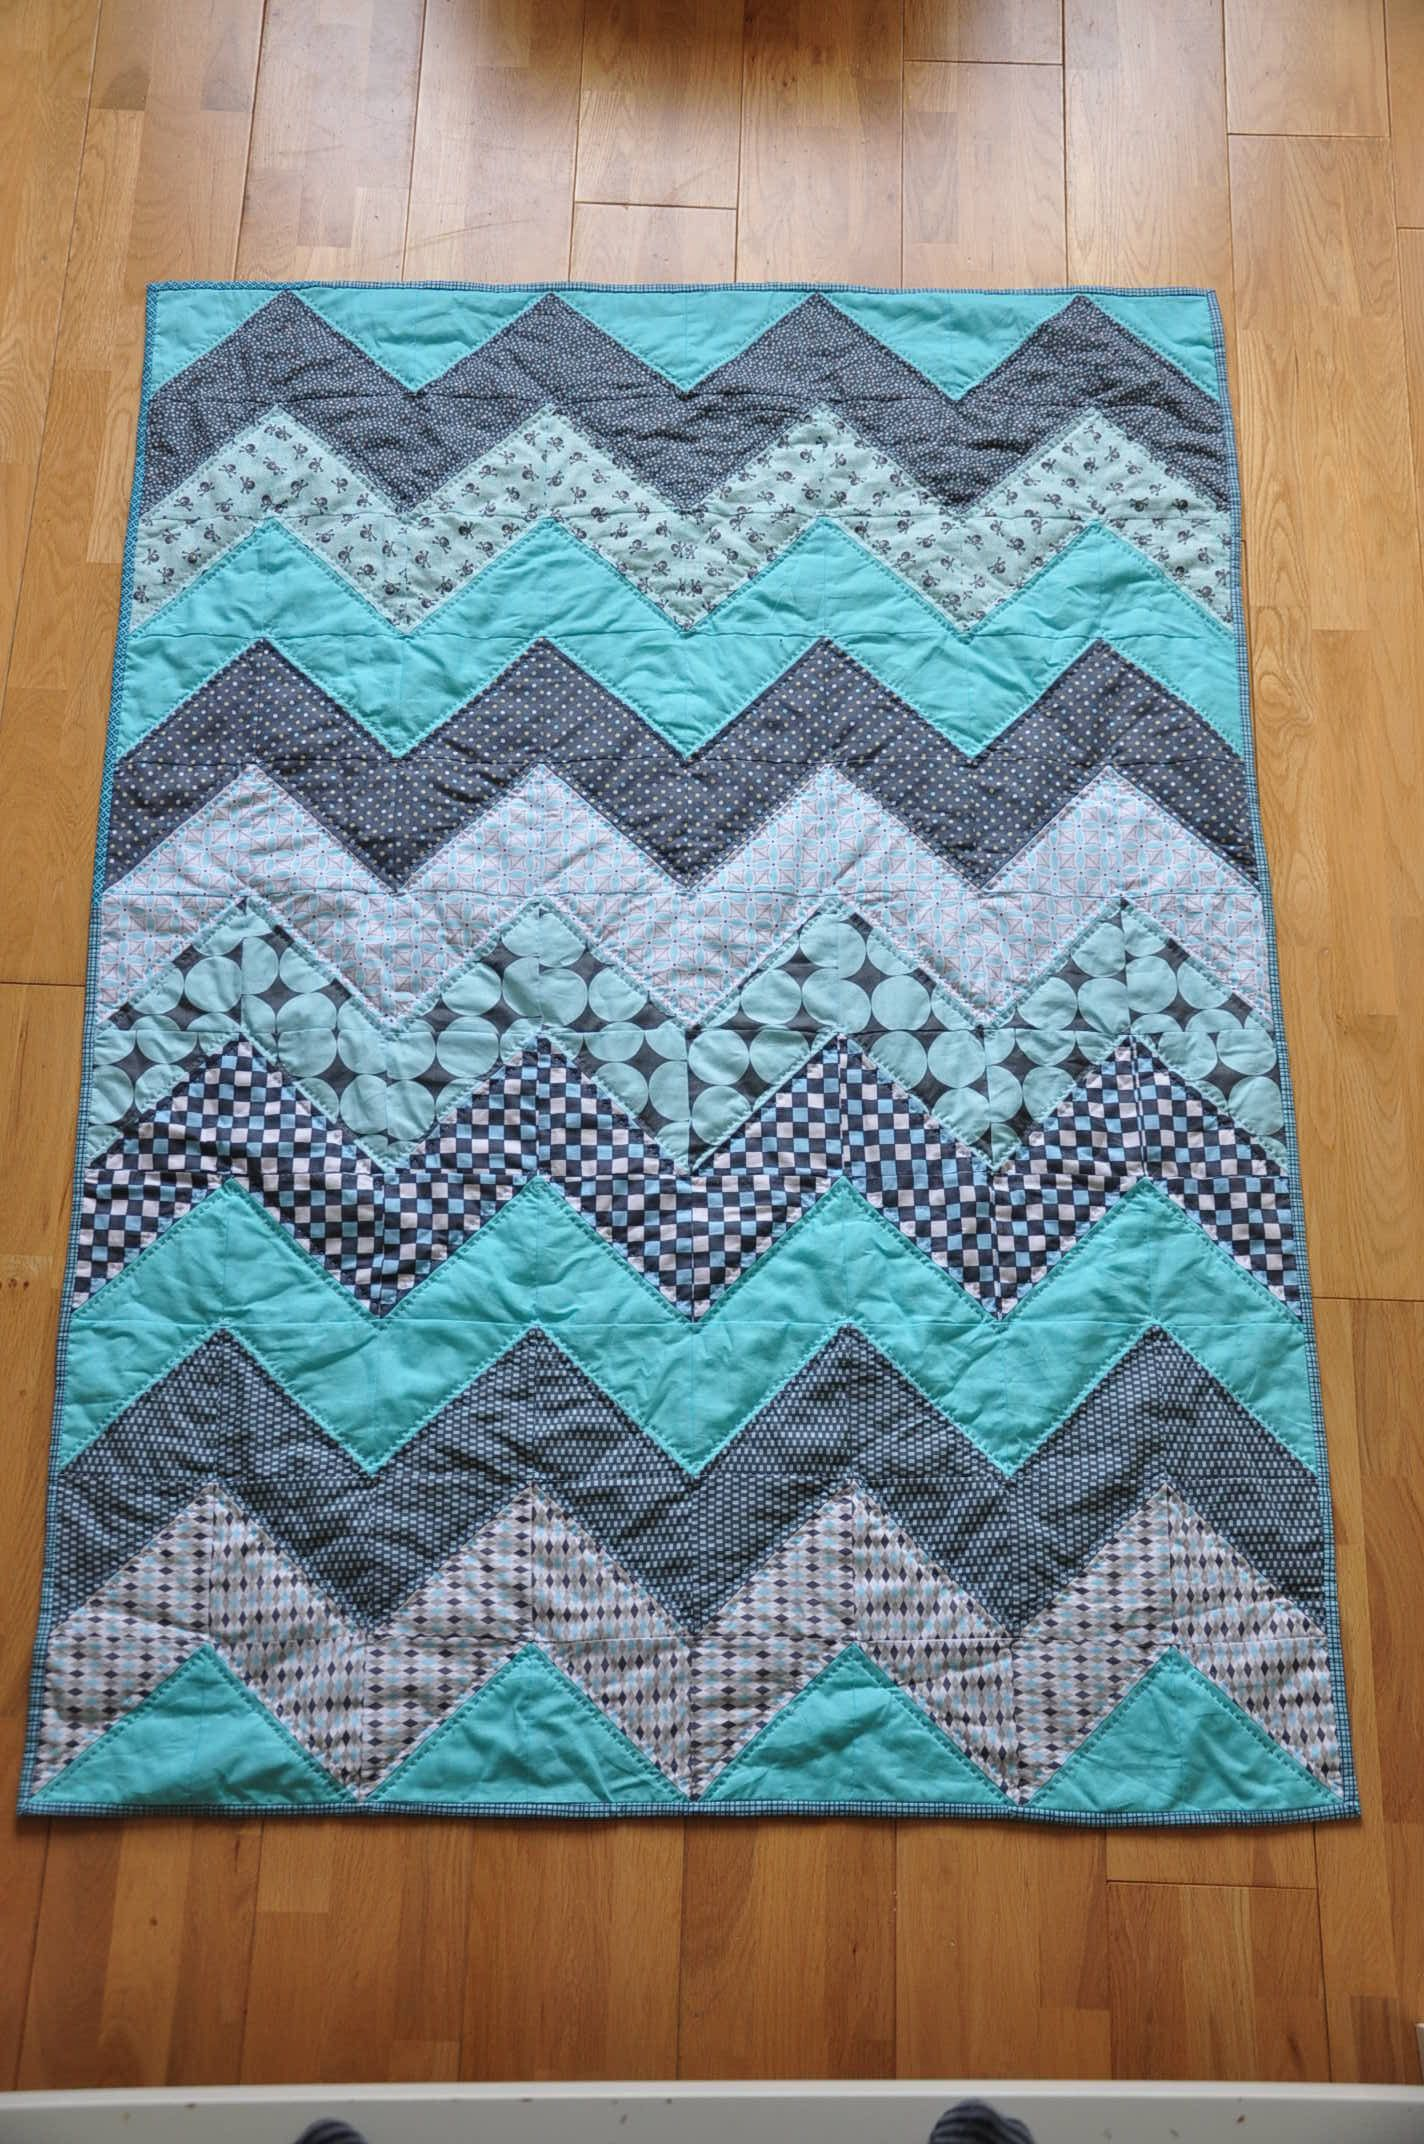 Quilting Designs For Chevron Quilts : Pinterest: Discover and save creative ideas